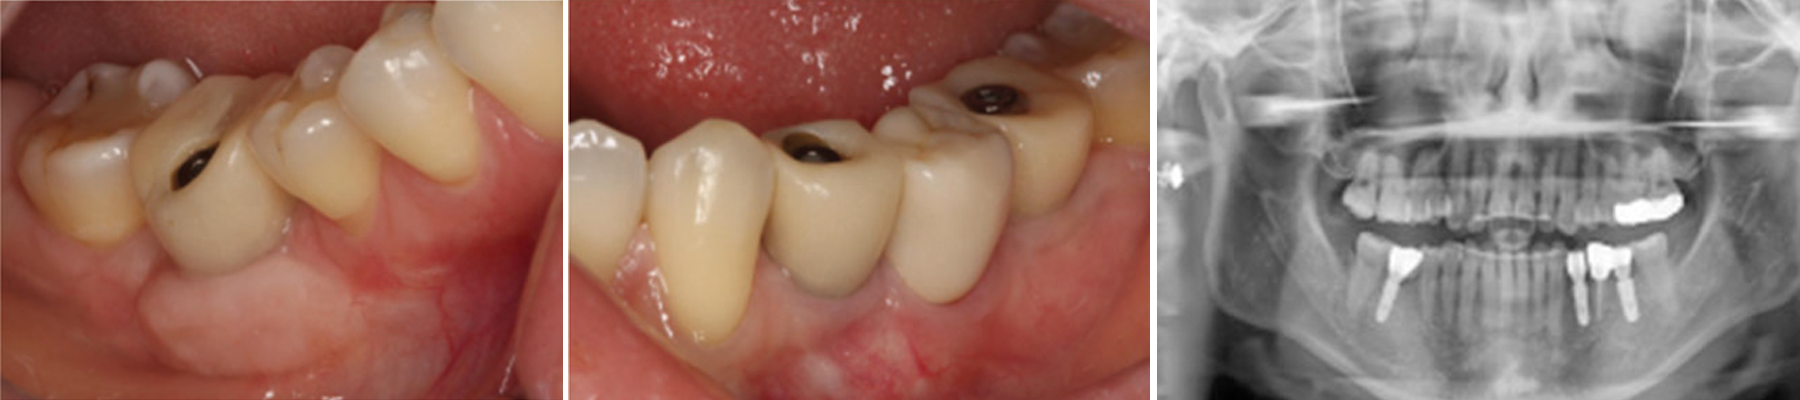 Prosthetic state and panoramic view of 2 years after implant placement